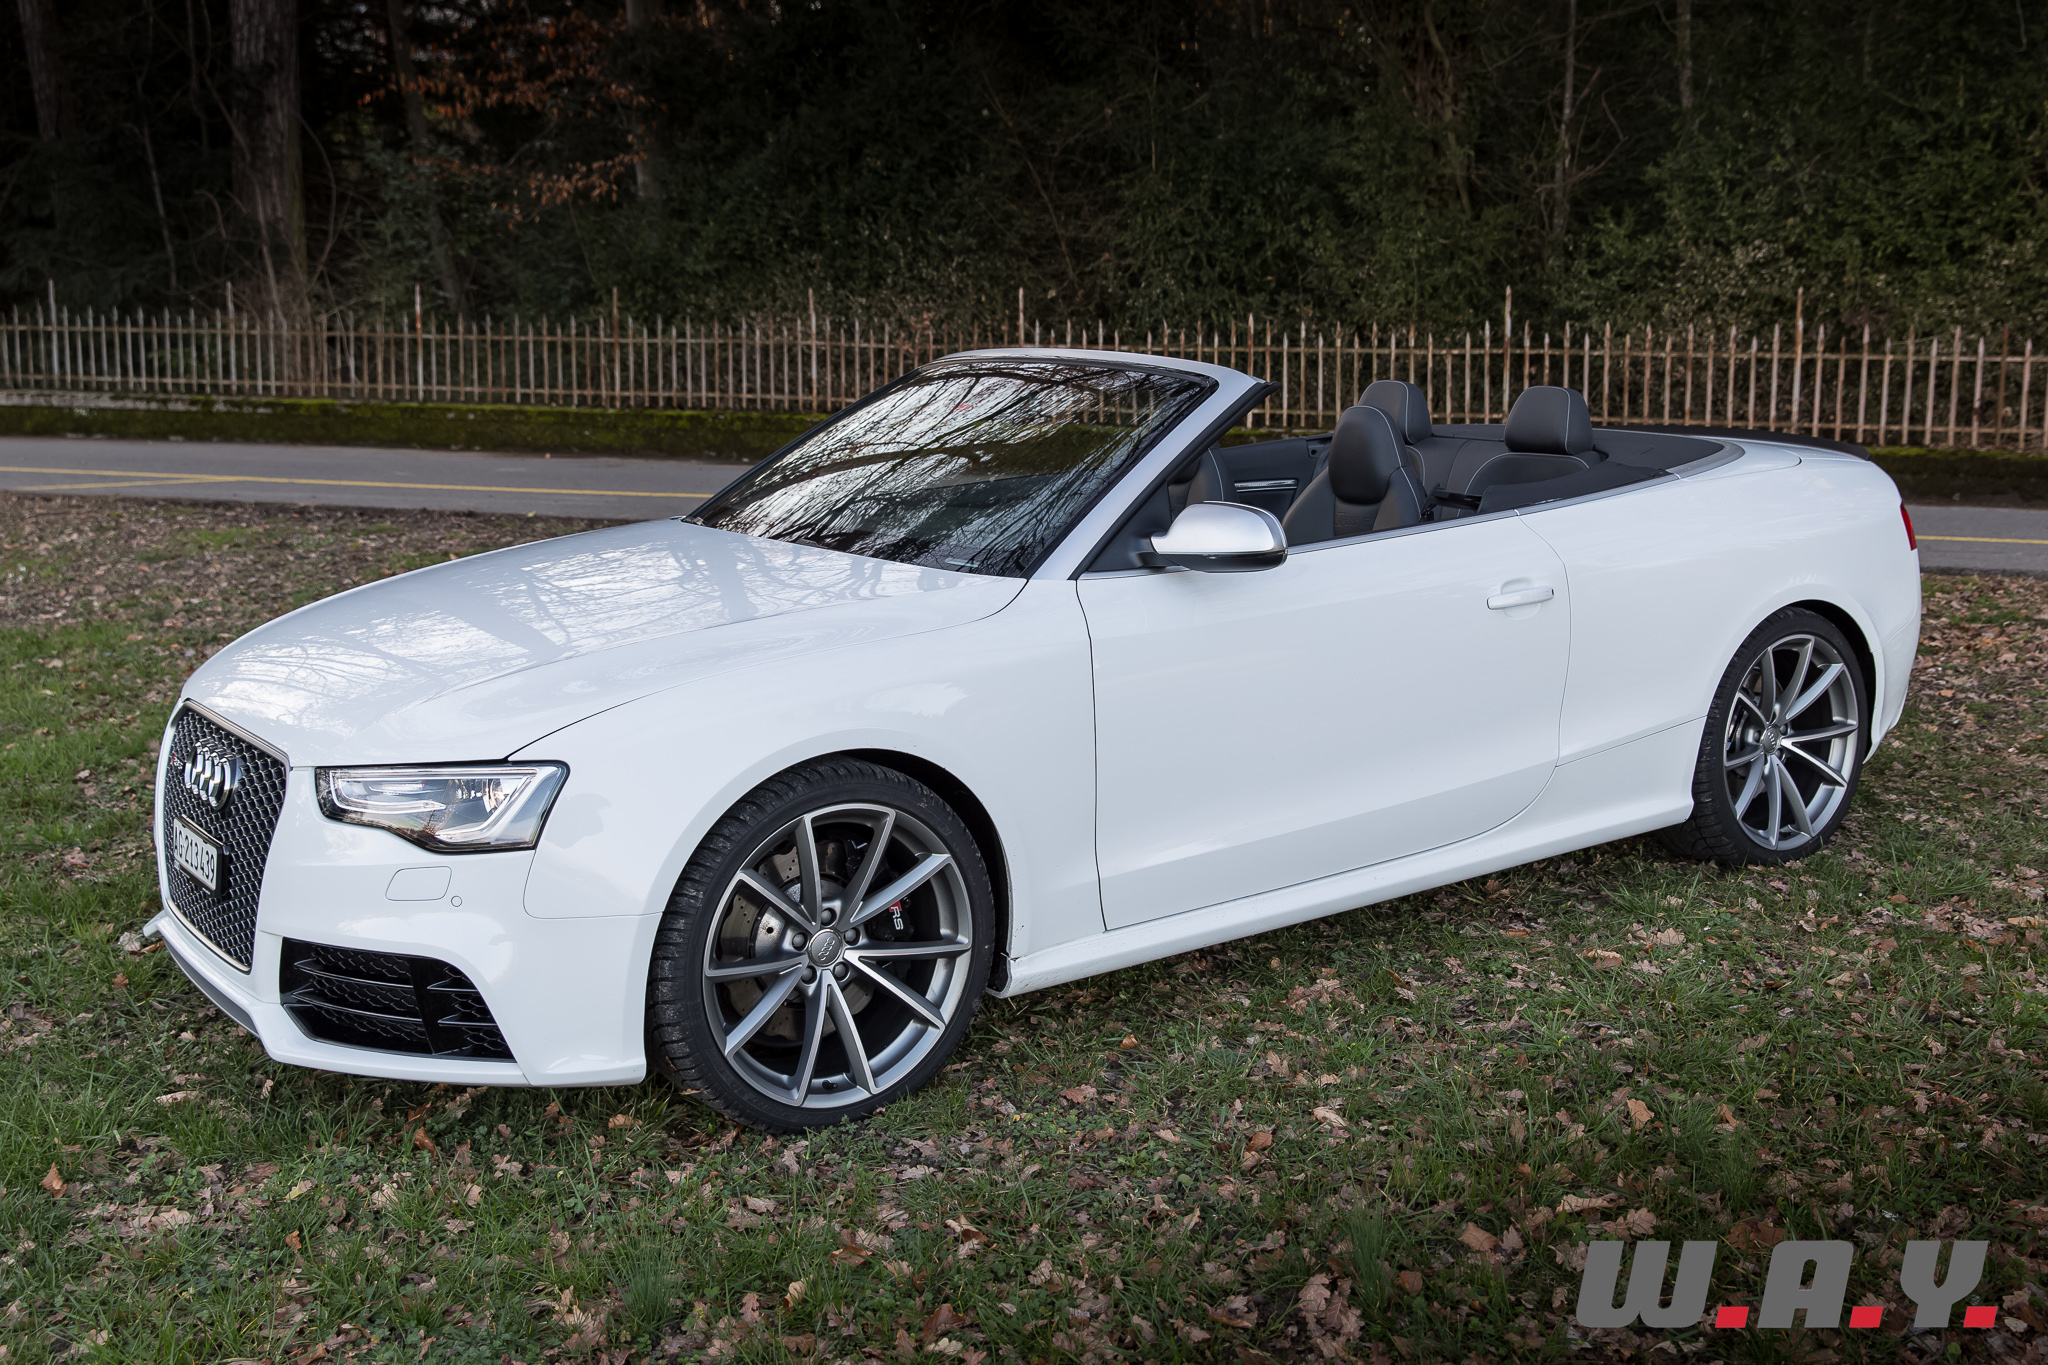 AudiRS5Cabriolet-12